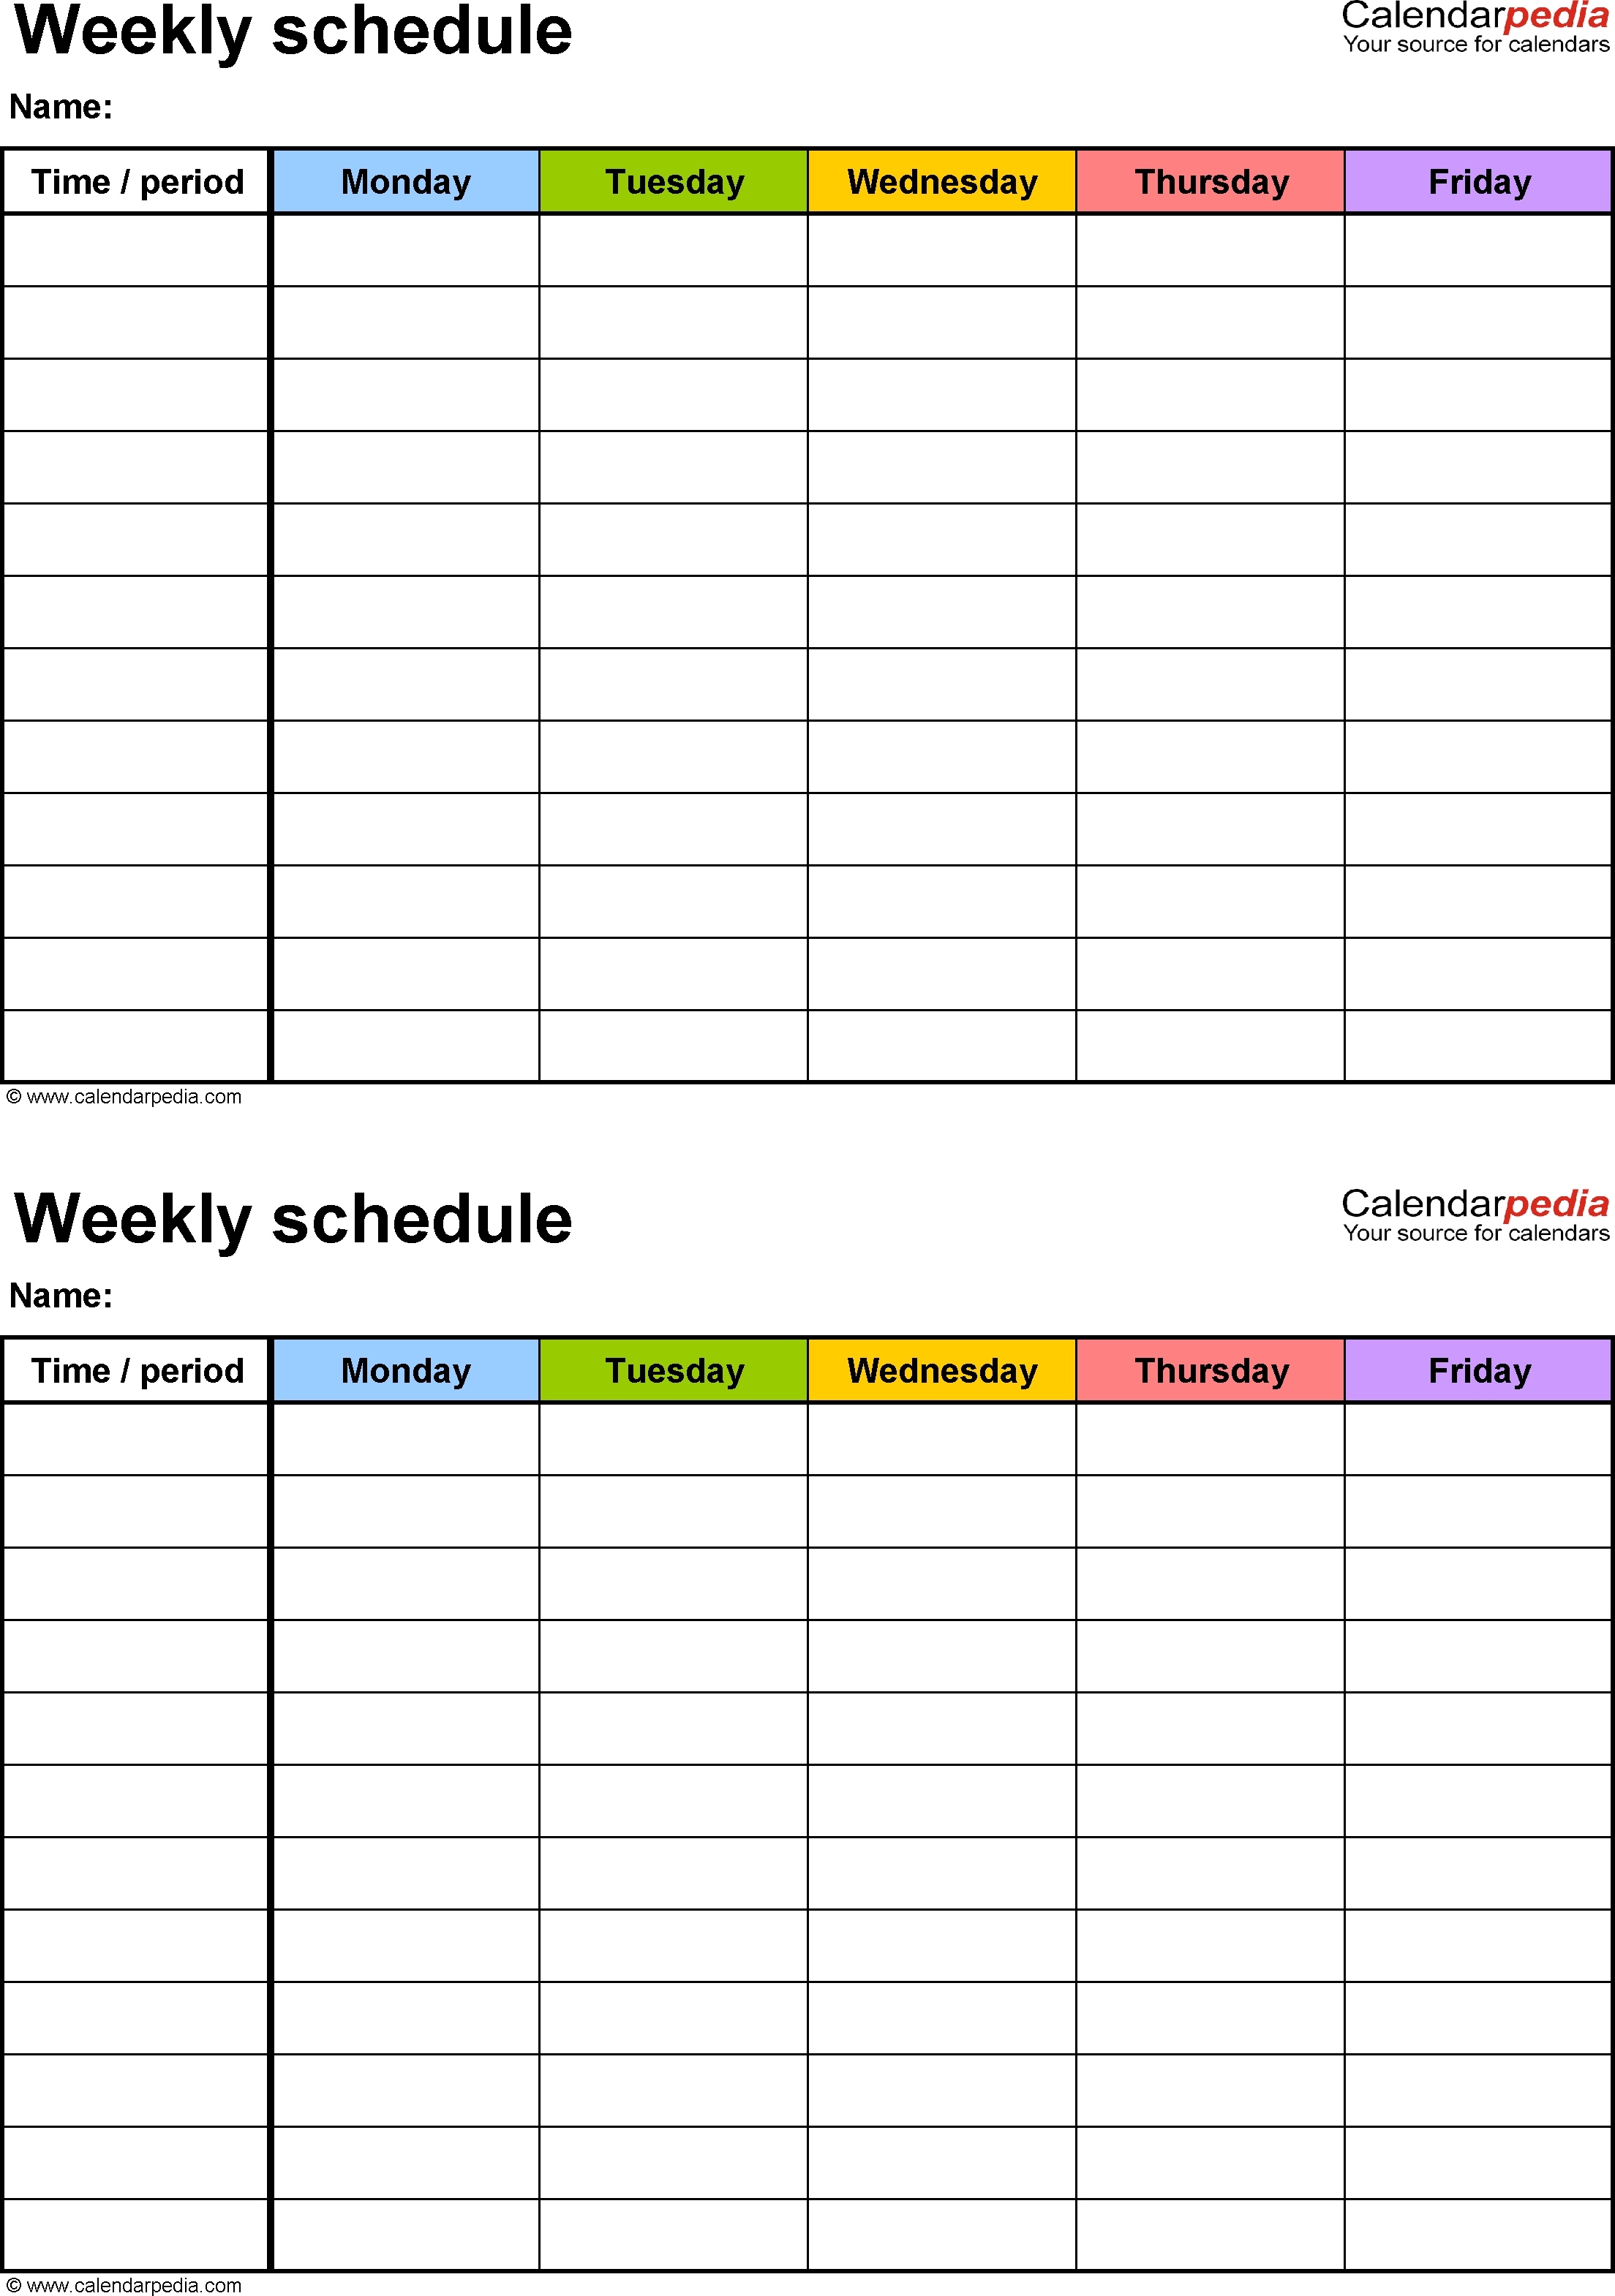 Free Weekly Schedule Templates For Pdf - 18 Templates throughout Monday To Friday Schedule Printable